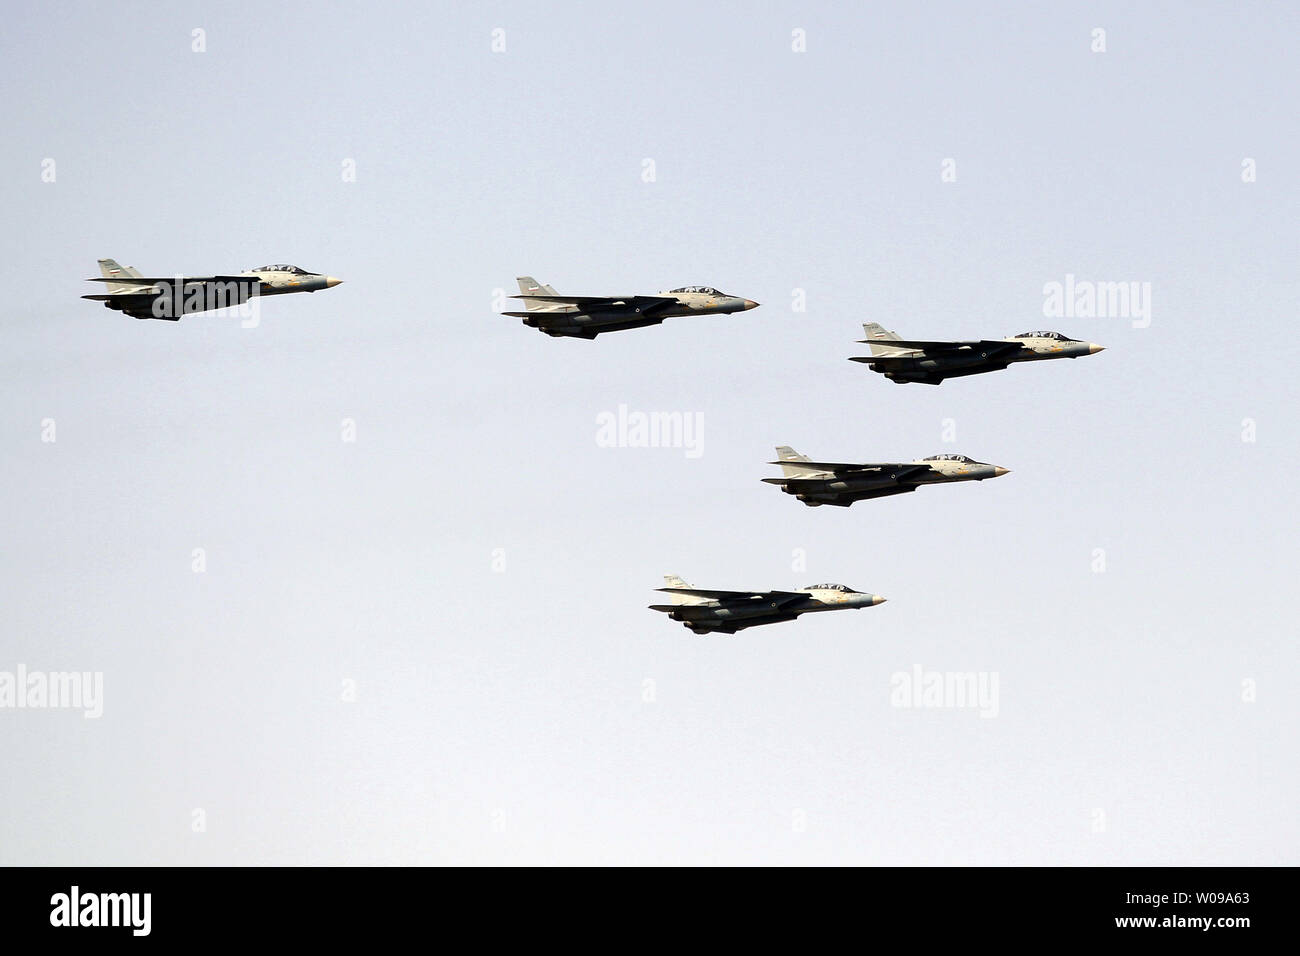 Iranian fighter jets take part during the National Army Day military parade in front of the mausoleum of the Iran's late leader Ayatollah Khomeini in Tehran, Iran on April 18, 2011. The Iranian President Mahmoud Ahmadinejad used the occasion to accuse the United States for sowing discord in the Middle East.    UPI/Maryam Rahmanian - Stock Image